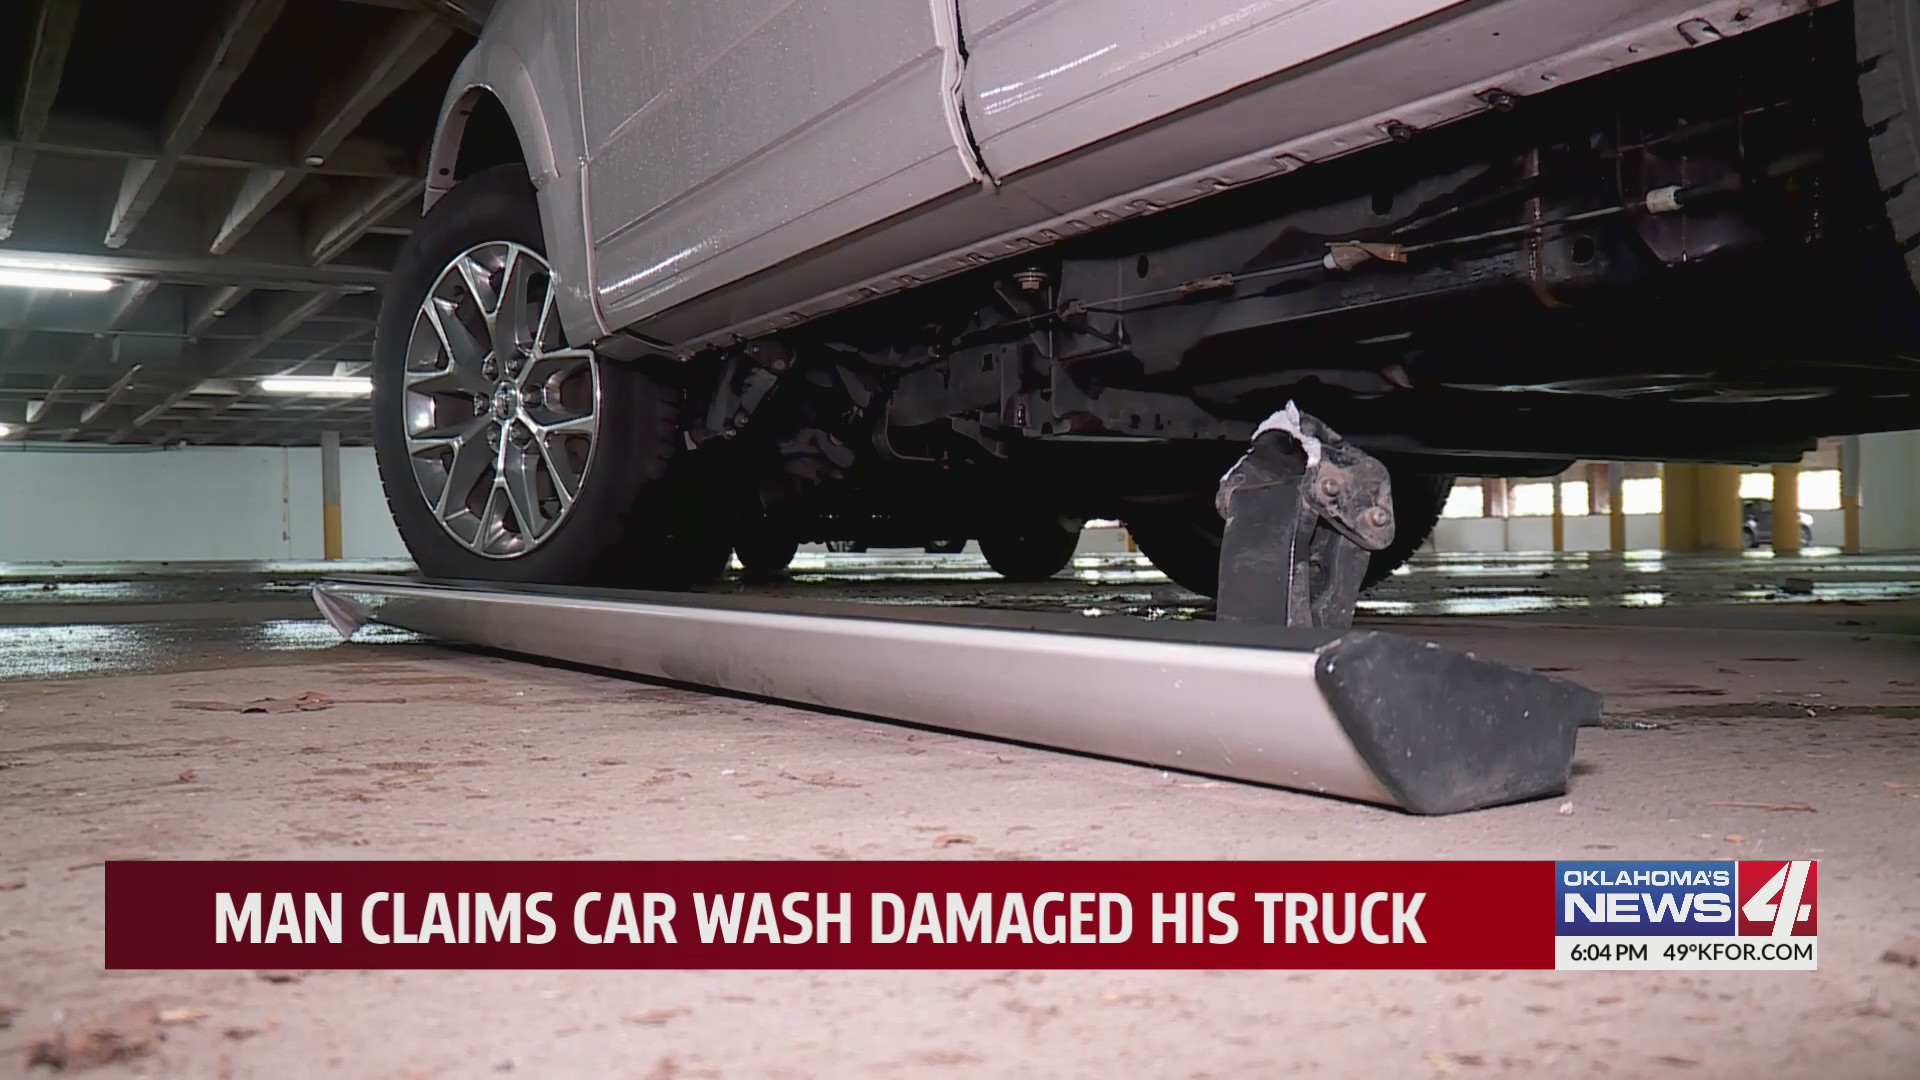 Foot board ripped off vehicle at car wash